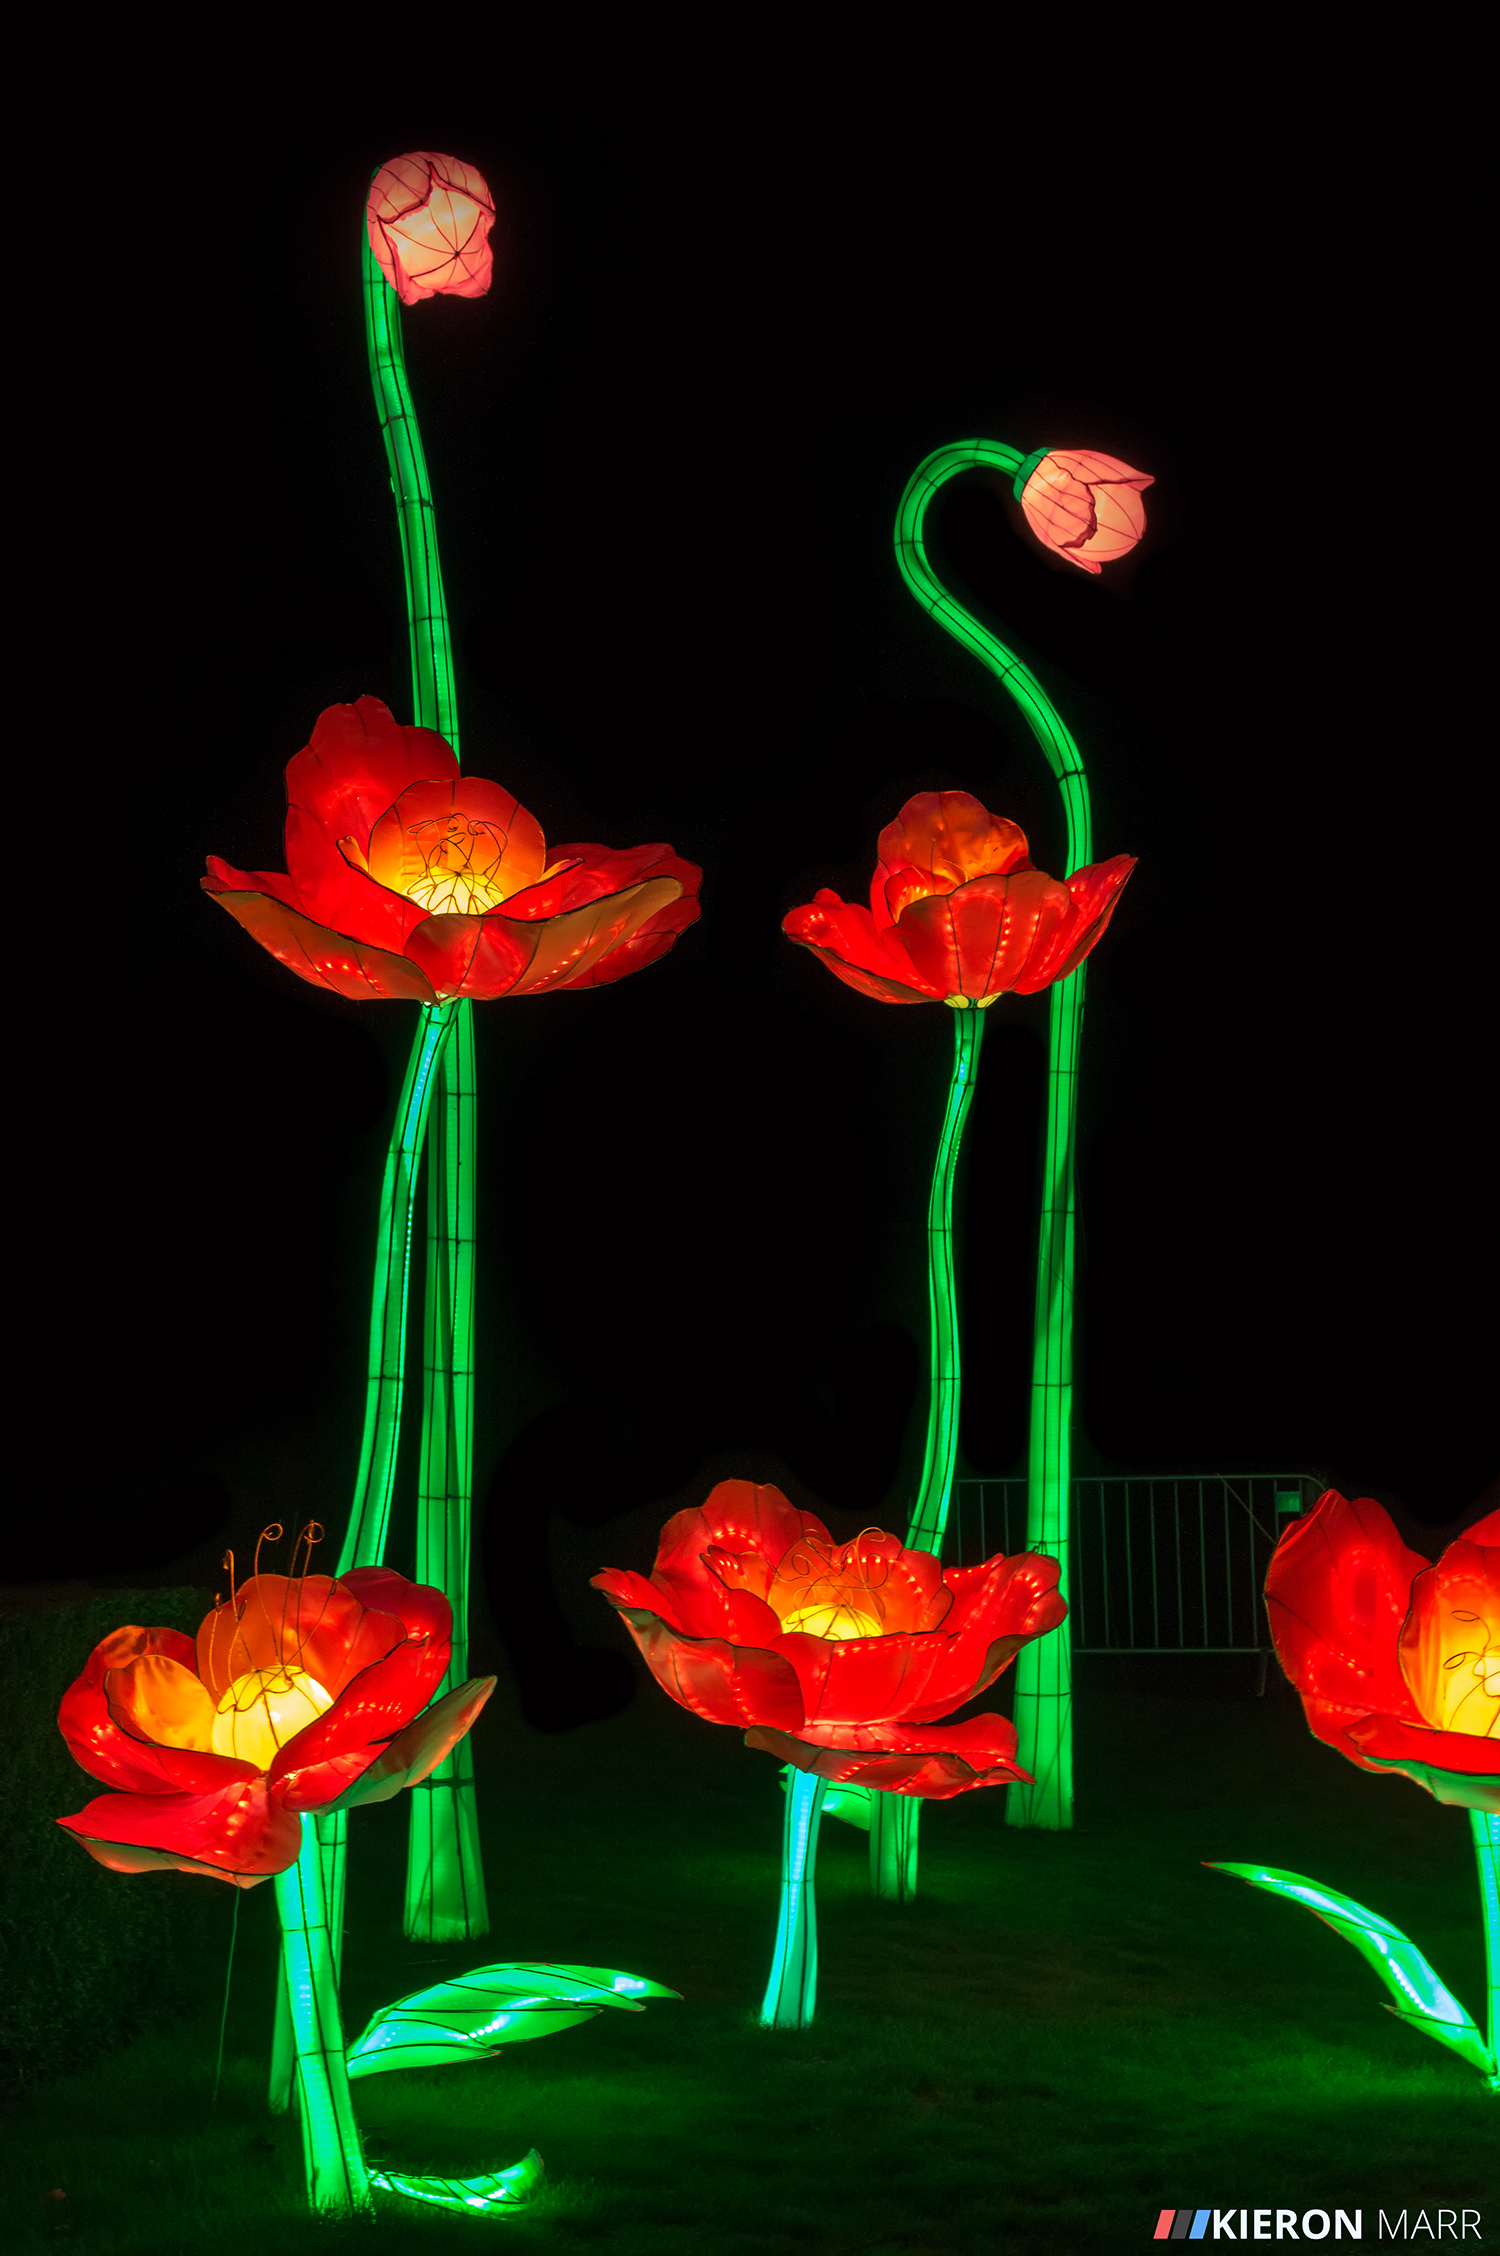 Longleat Festival of Light 2014 - Flowers